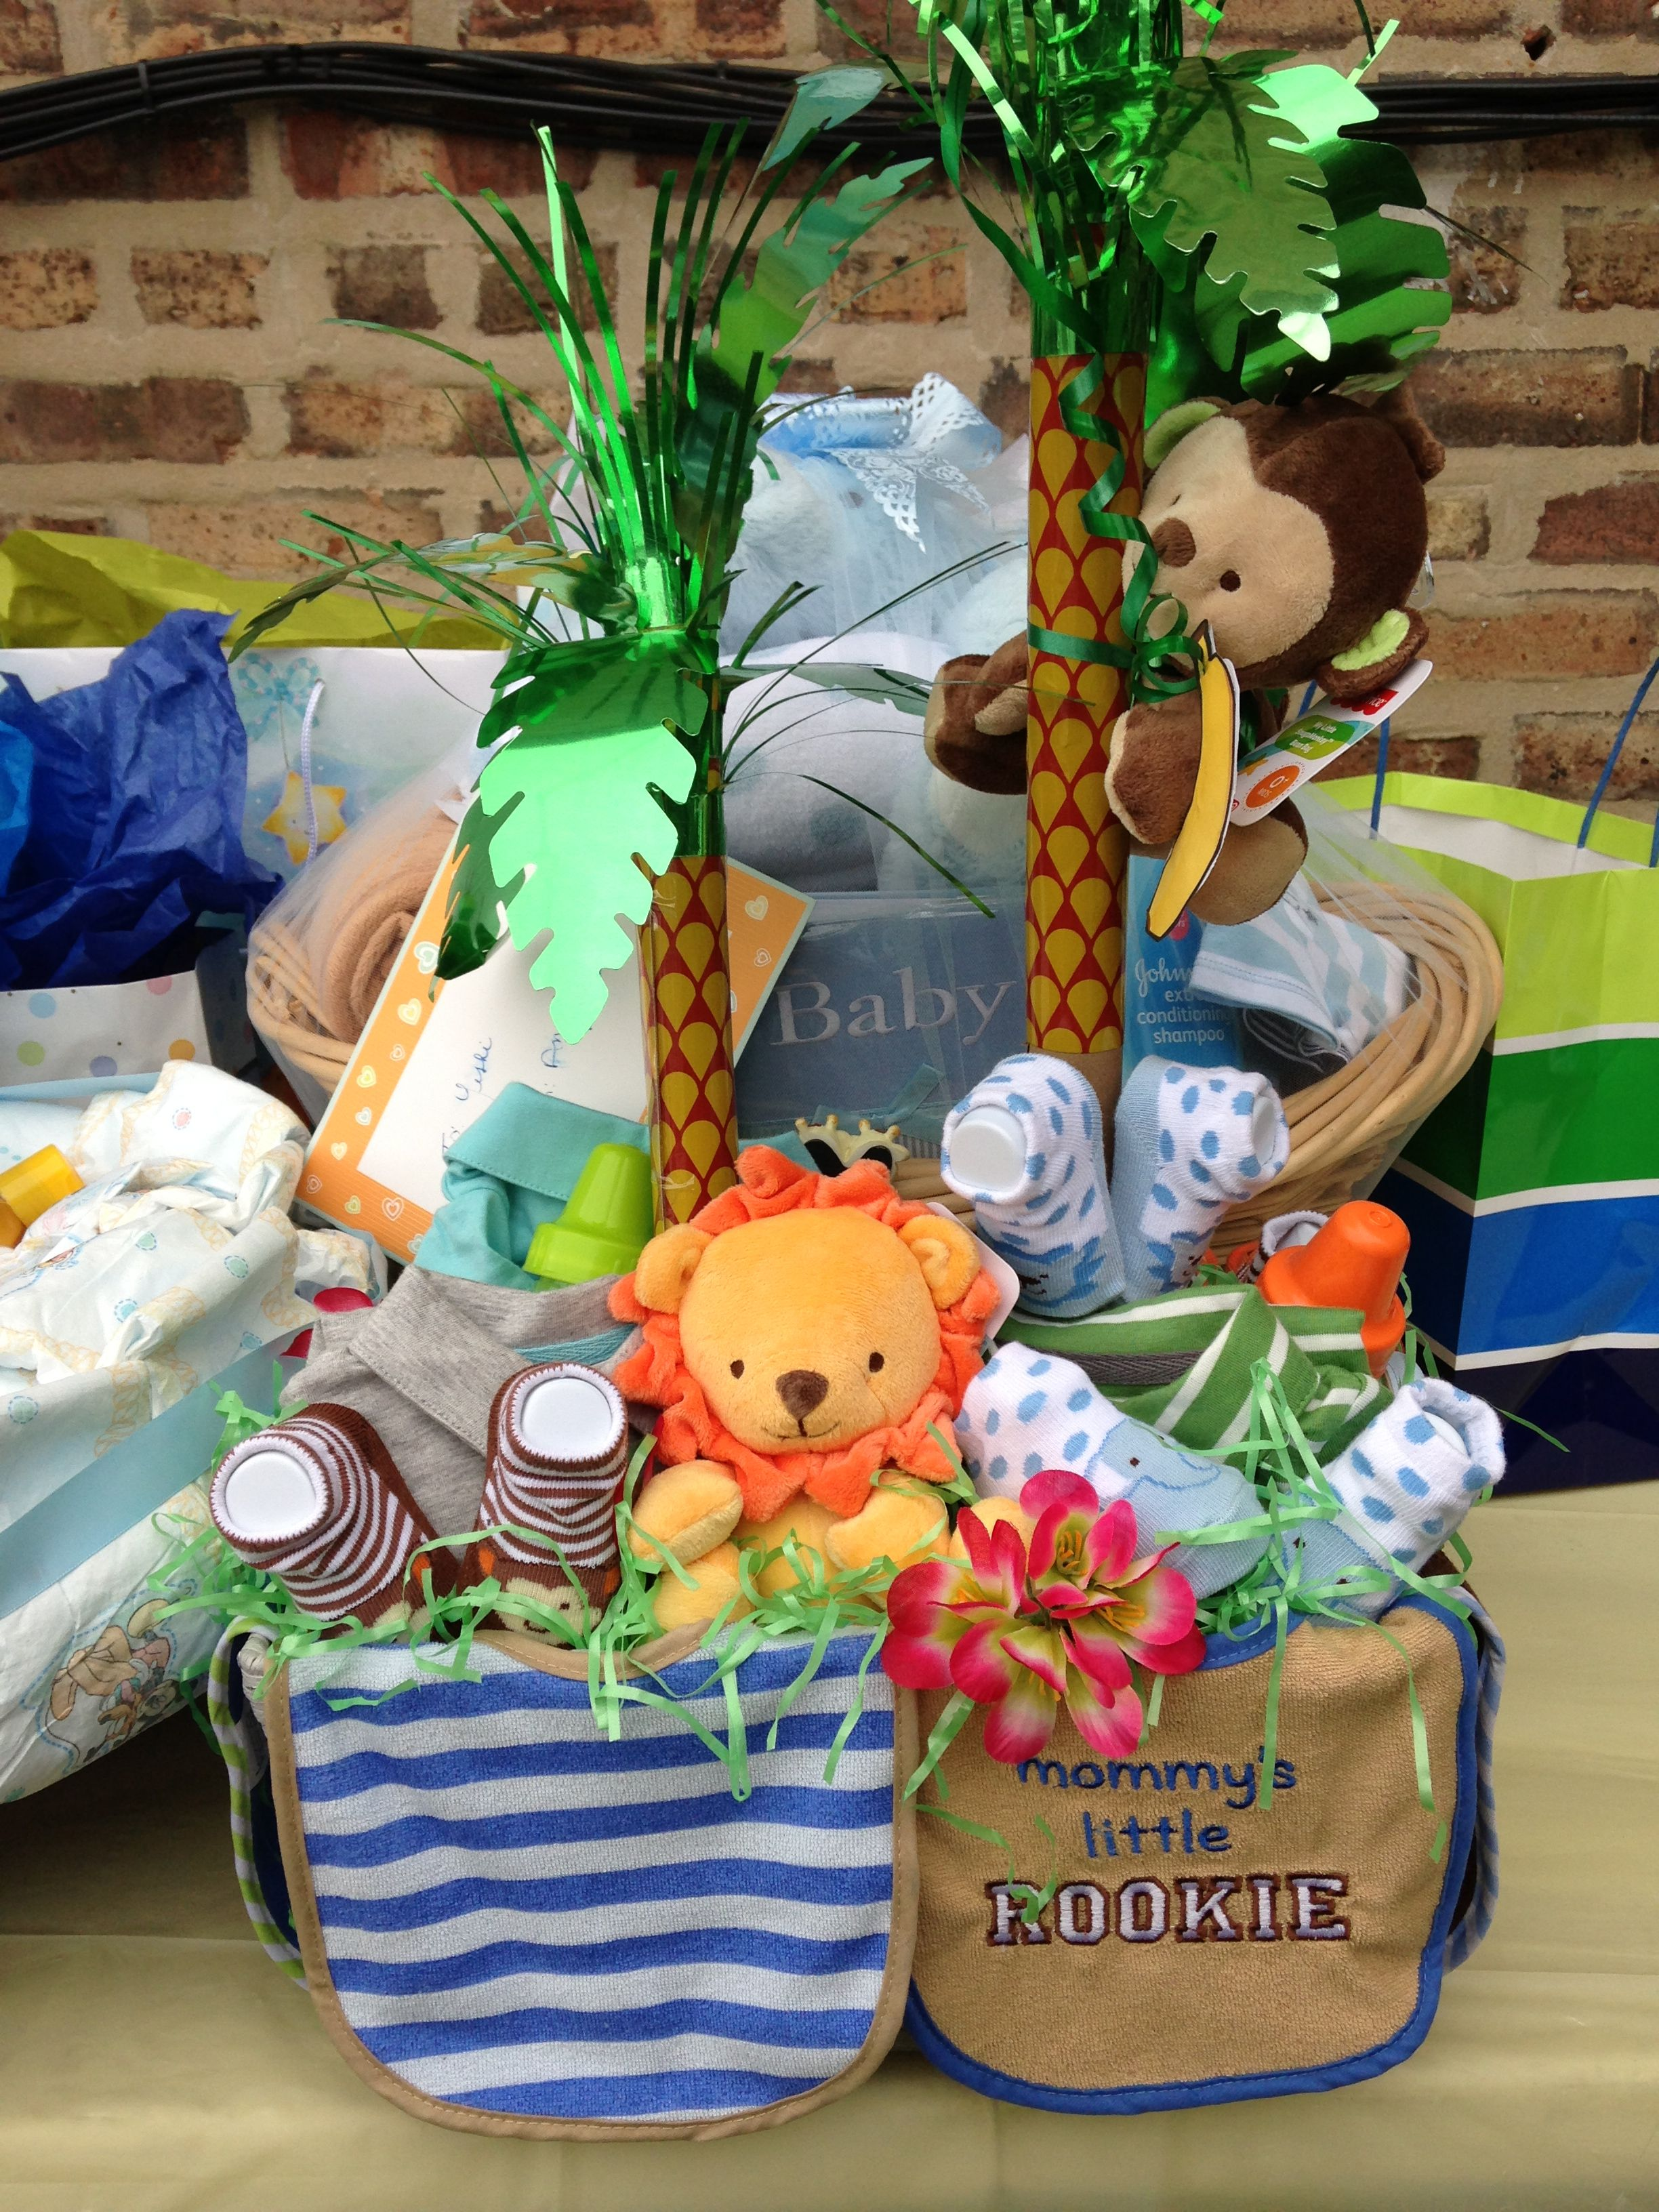 Baby Shower Jungle Theme Gift Basket Baby Shower Ideas Baby